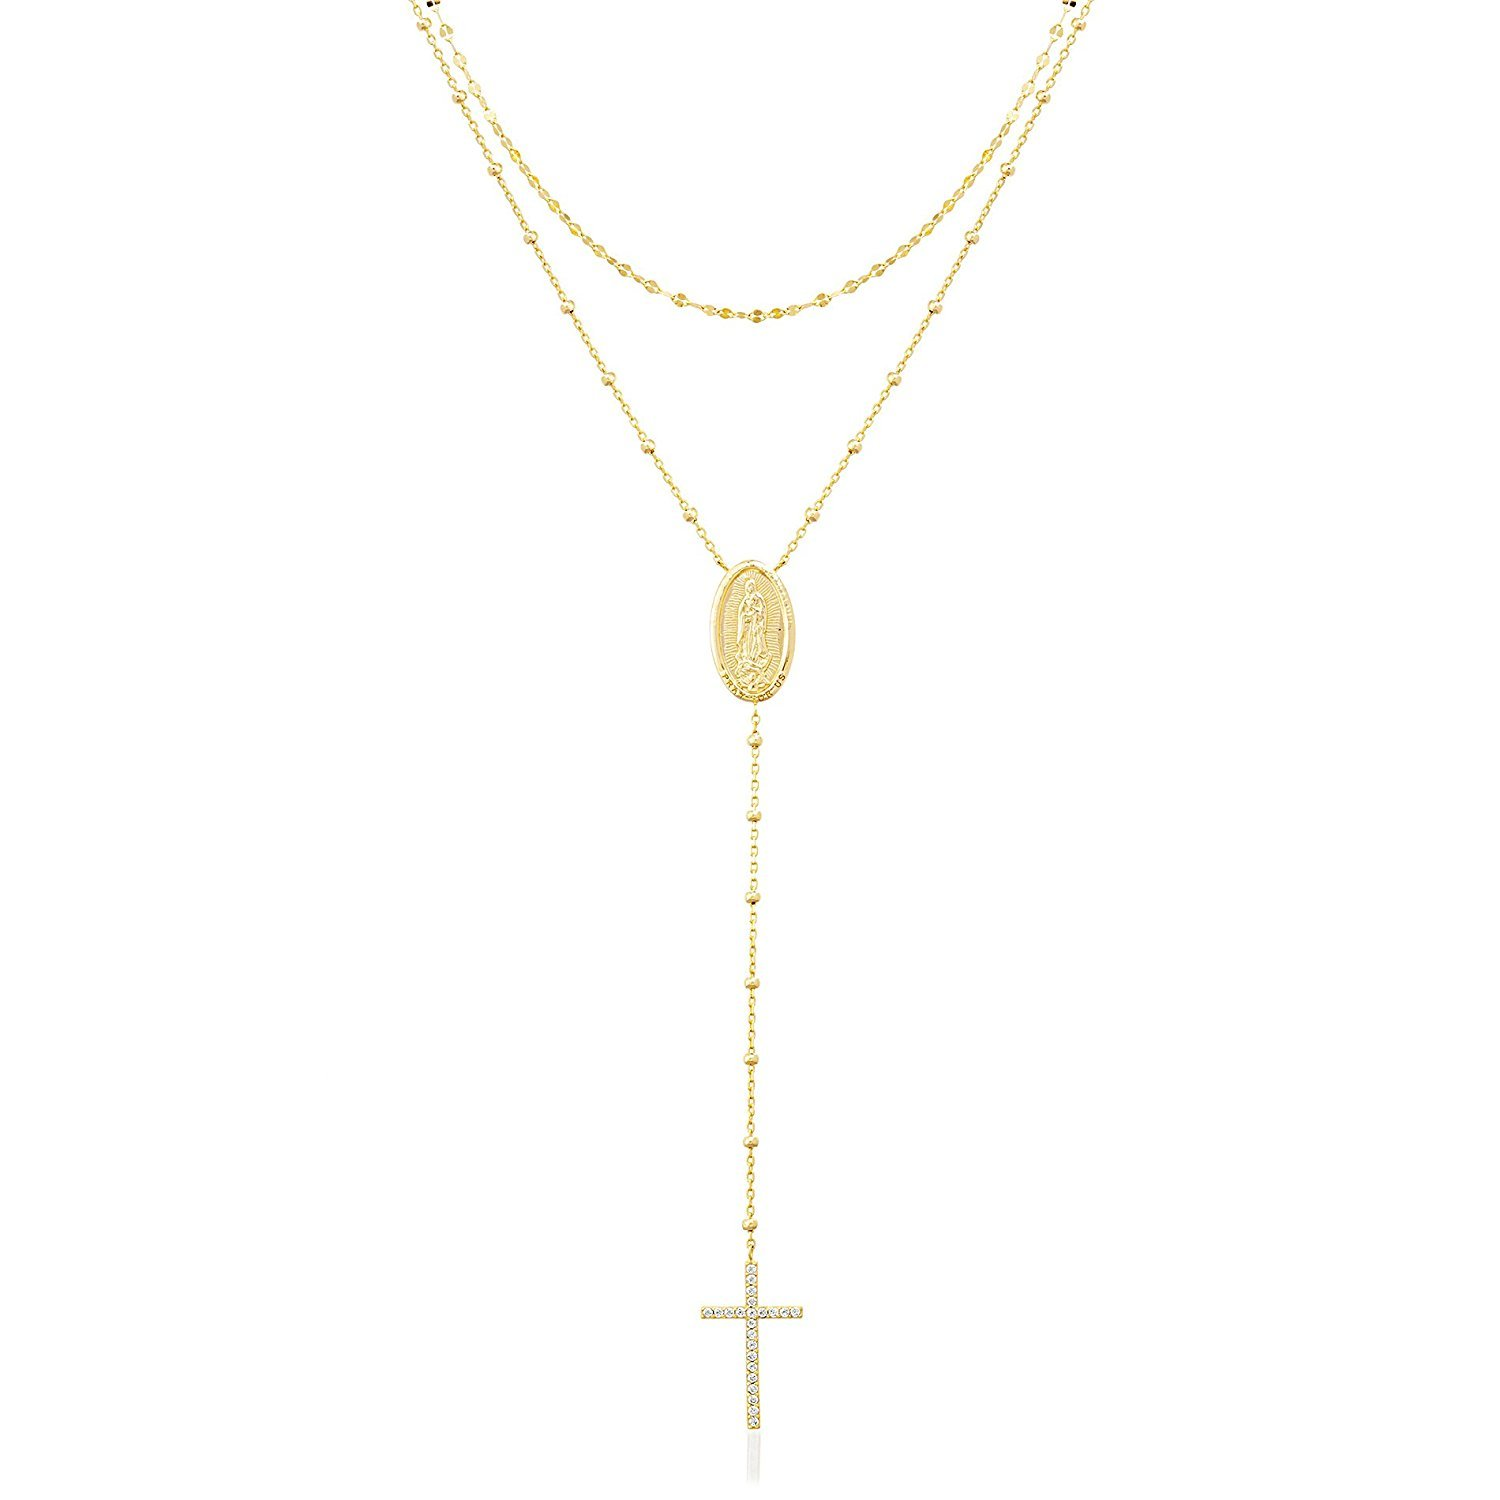 LESA MICHELE Yellow Gold Plated Sterling Silver Cubic Zirconia Oval Rosary and Cross Necklace for Women by Lesa Michele